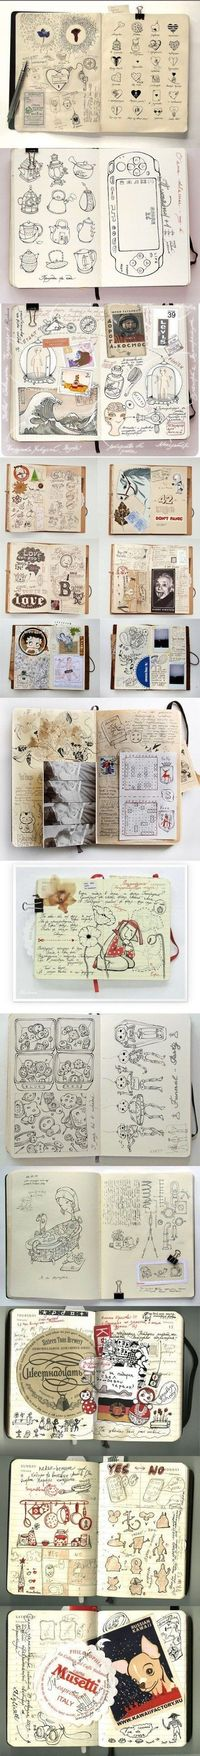 Absolutely Fantastic style in this sketchbook. Not sure who the artist is. There's a link below...however it's a Chinese site, so I'm confused about whether or not this is an artist showcasing their work, or if this is a Chinese Pinterest styl...